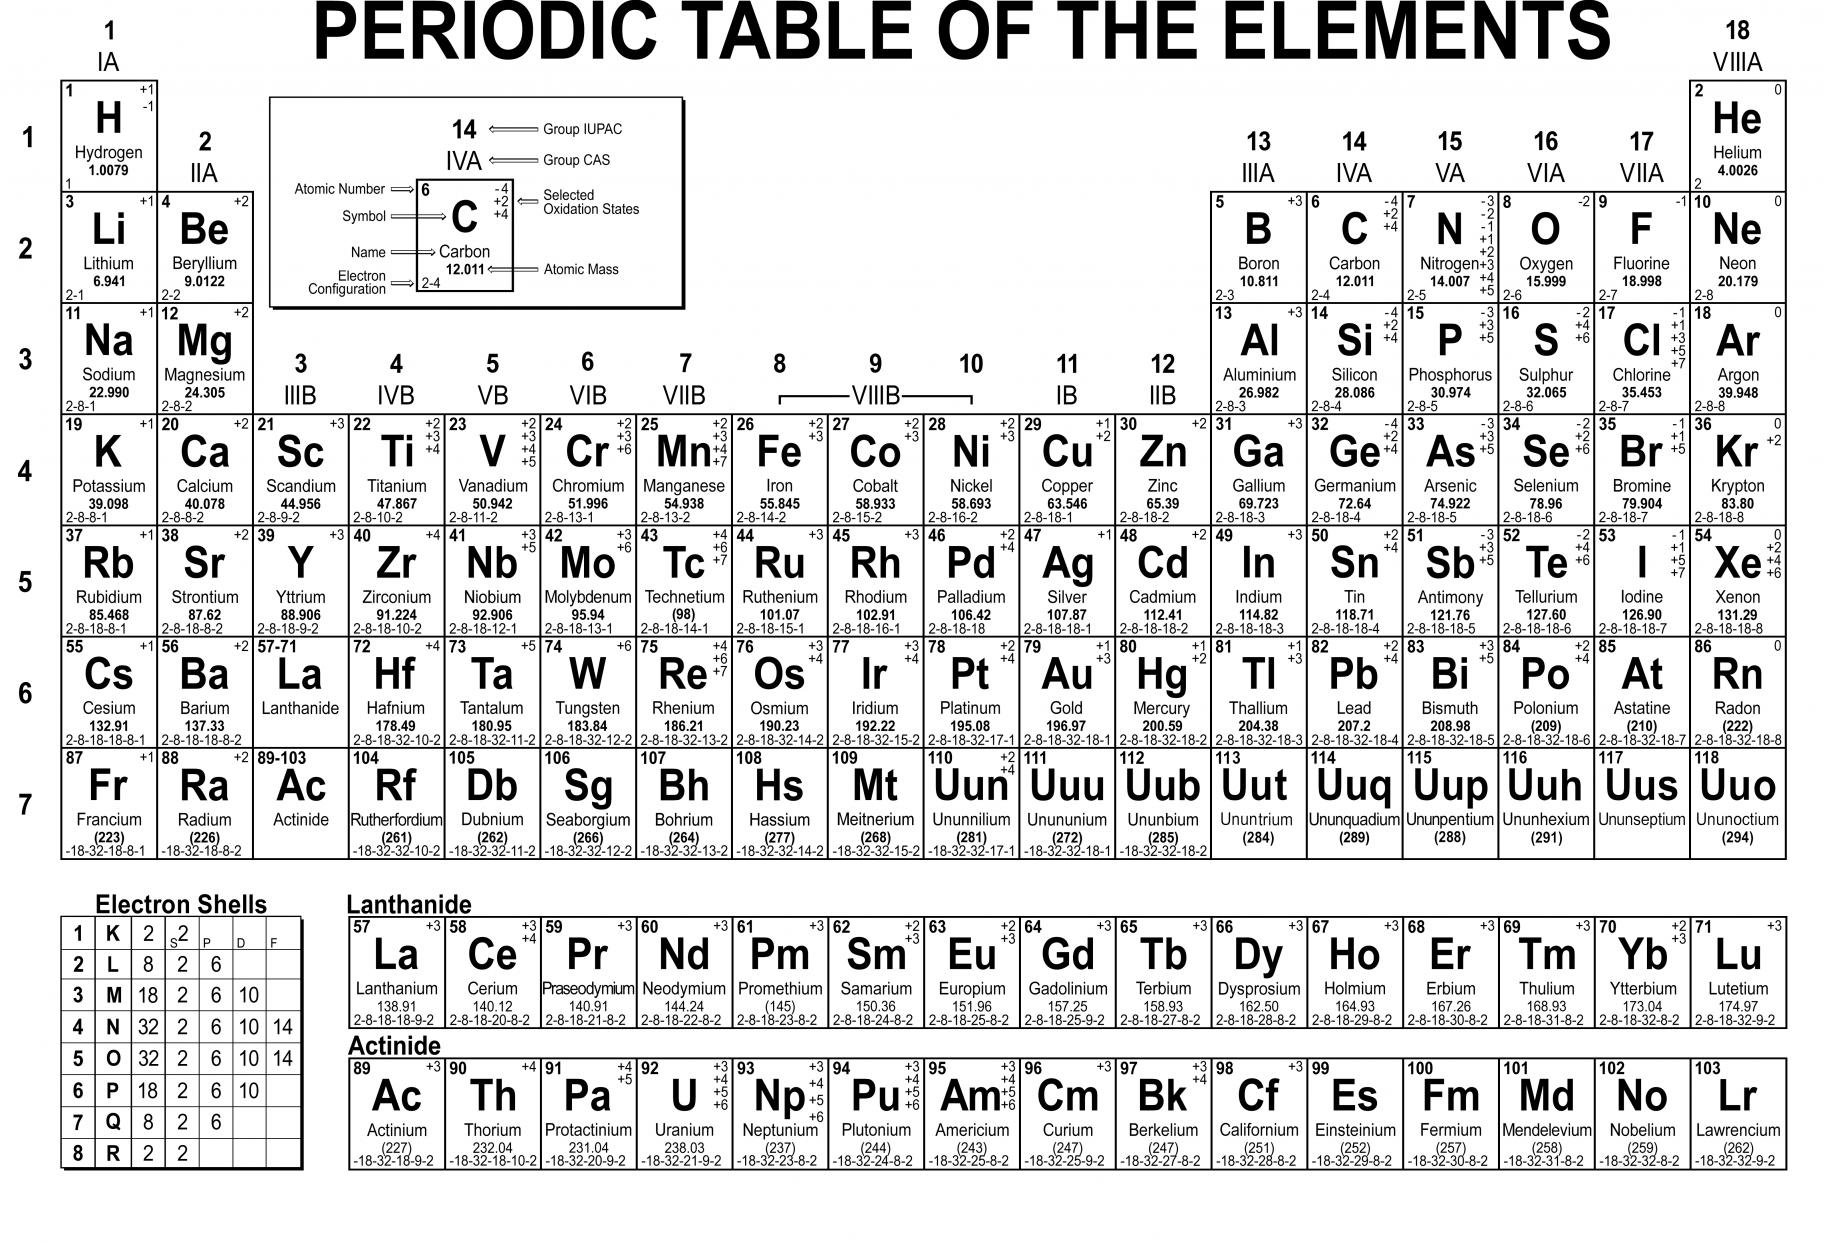 Printable periodic table of elements with everything labeled pdf periodic table filetype pdf gallery images gamestrikefo Images